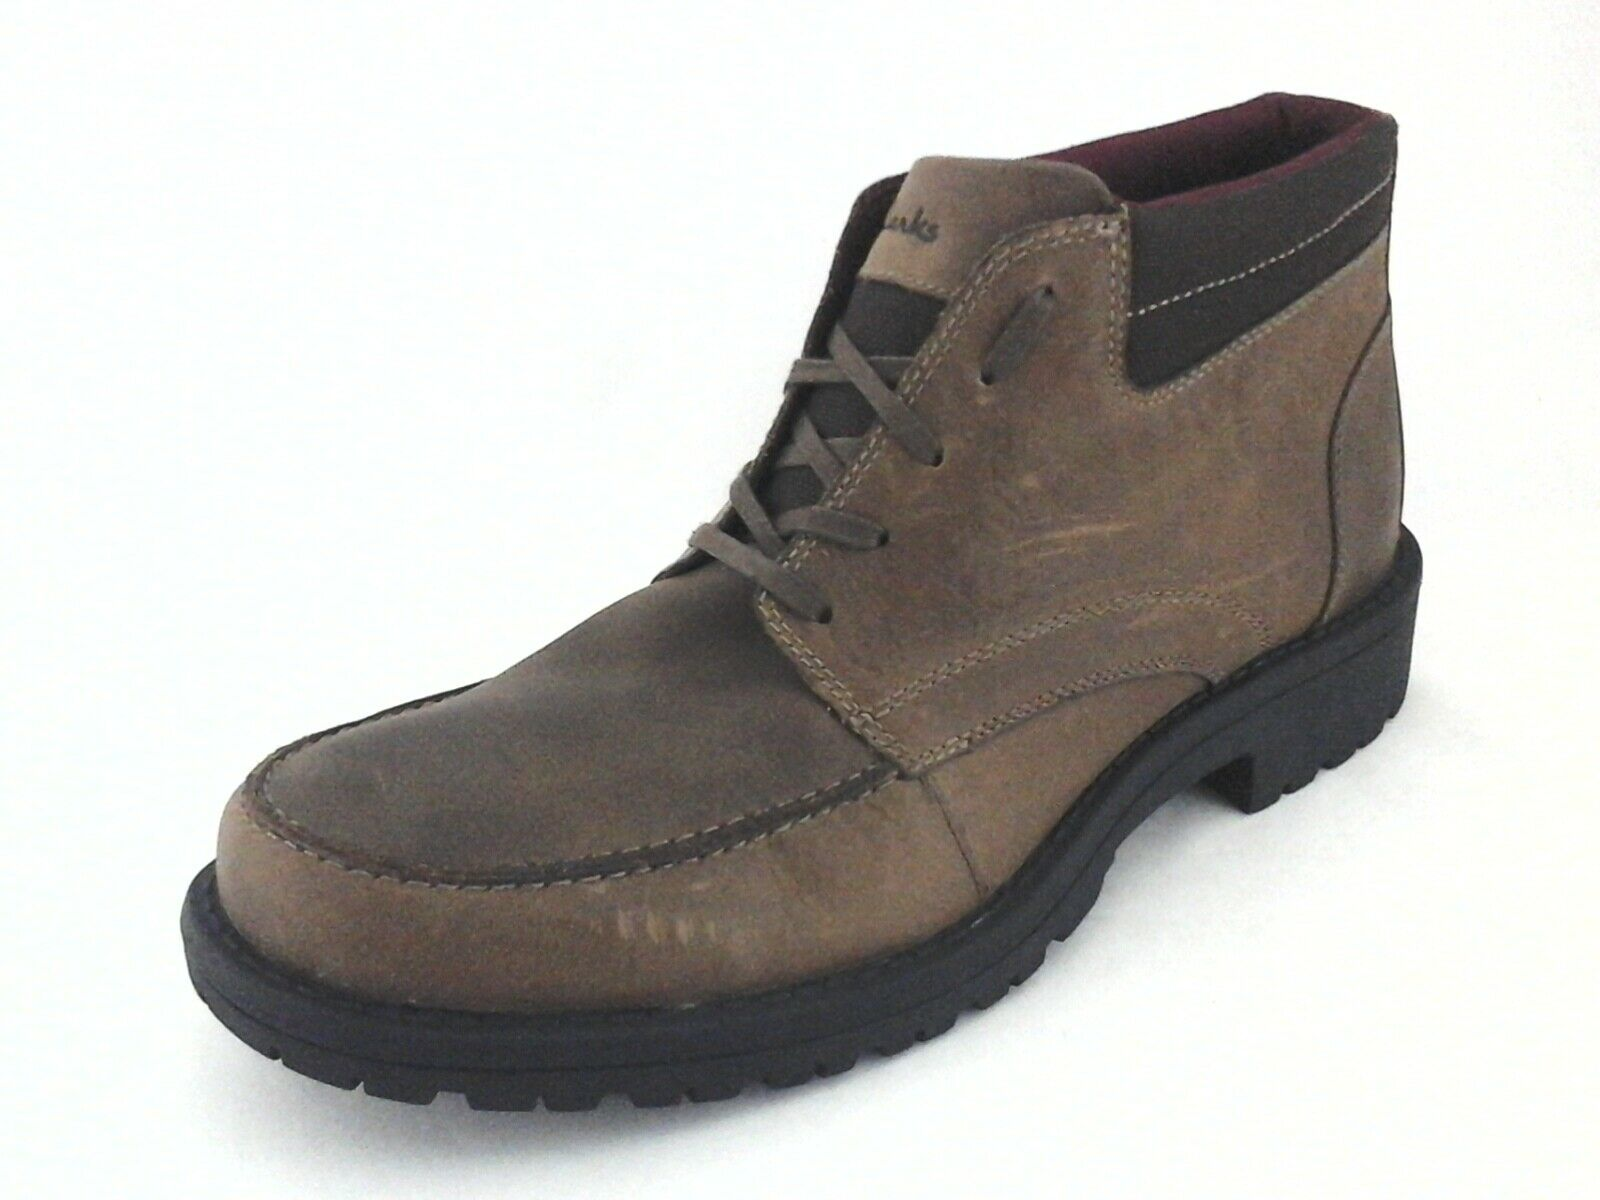 Clarks Ankle Boots Brown w Lug Sole Leather Chukka Casual Men's US 12